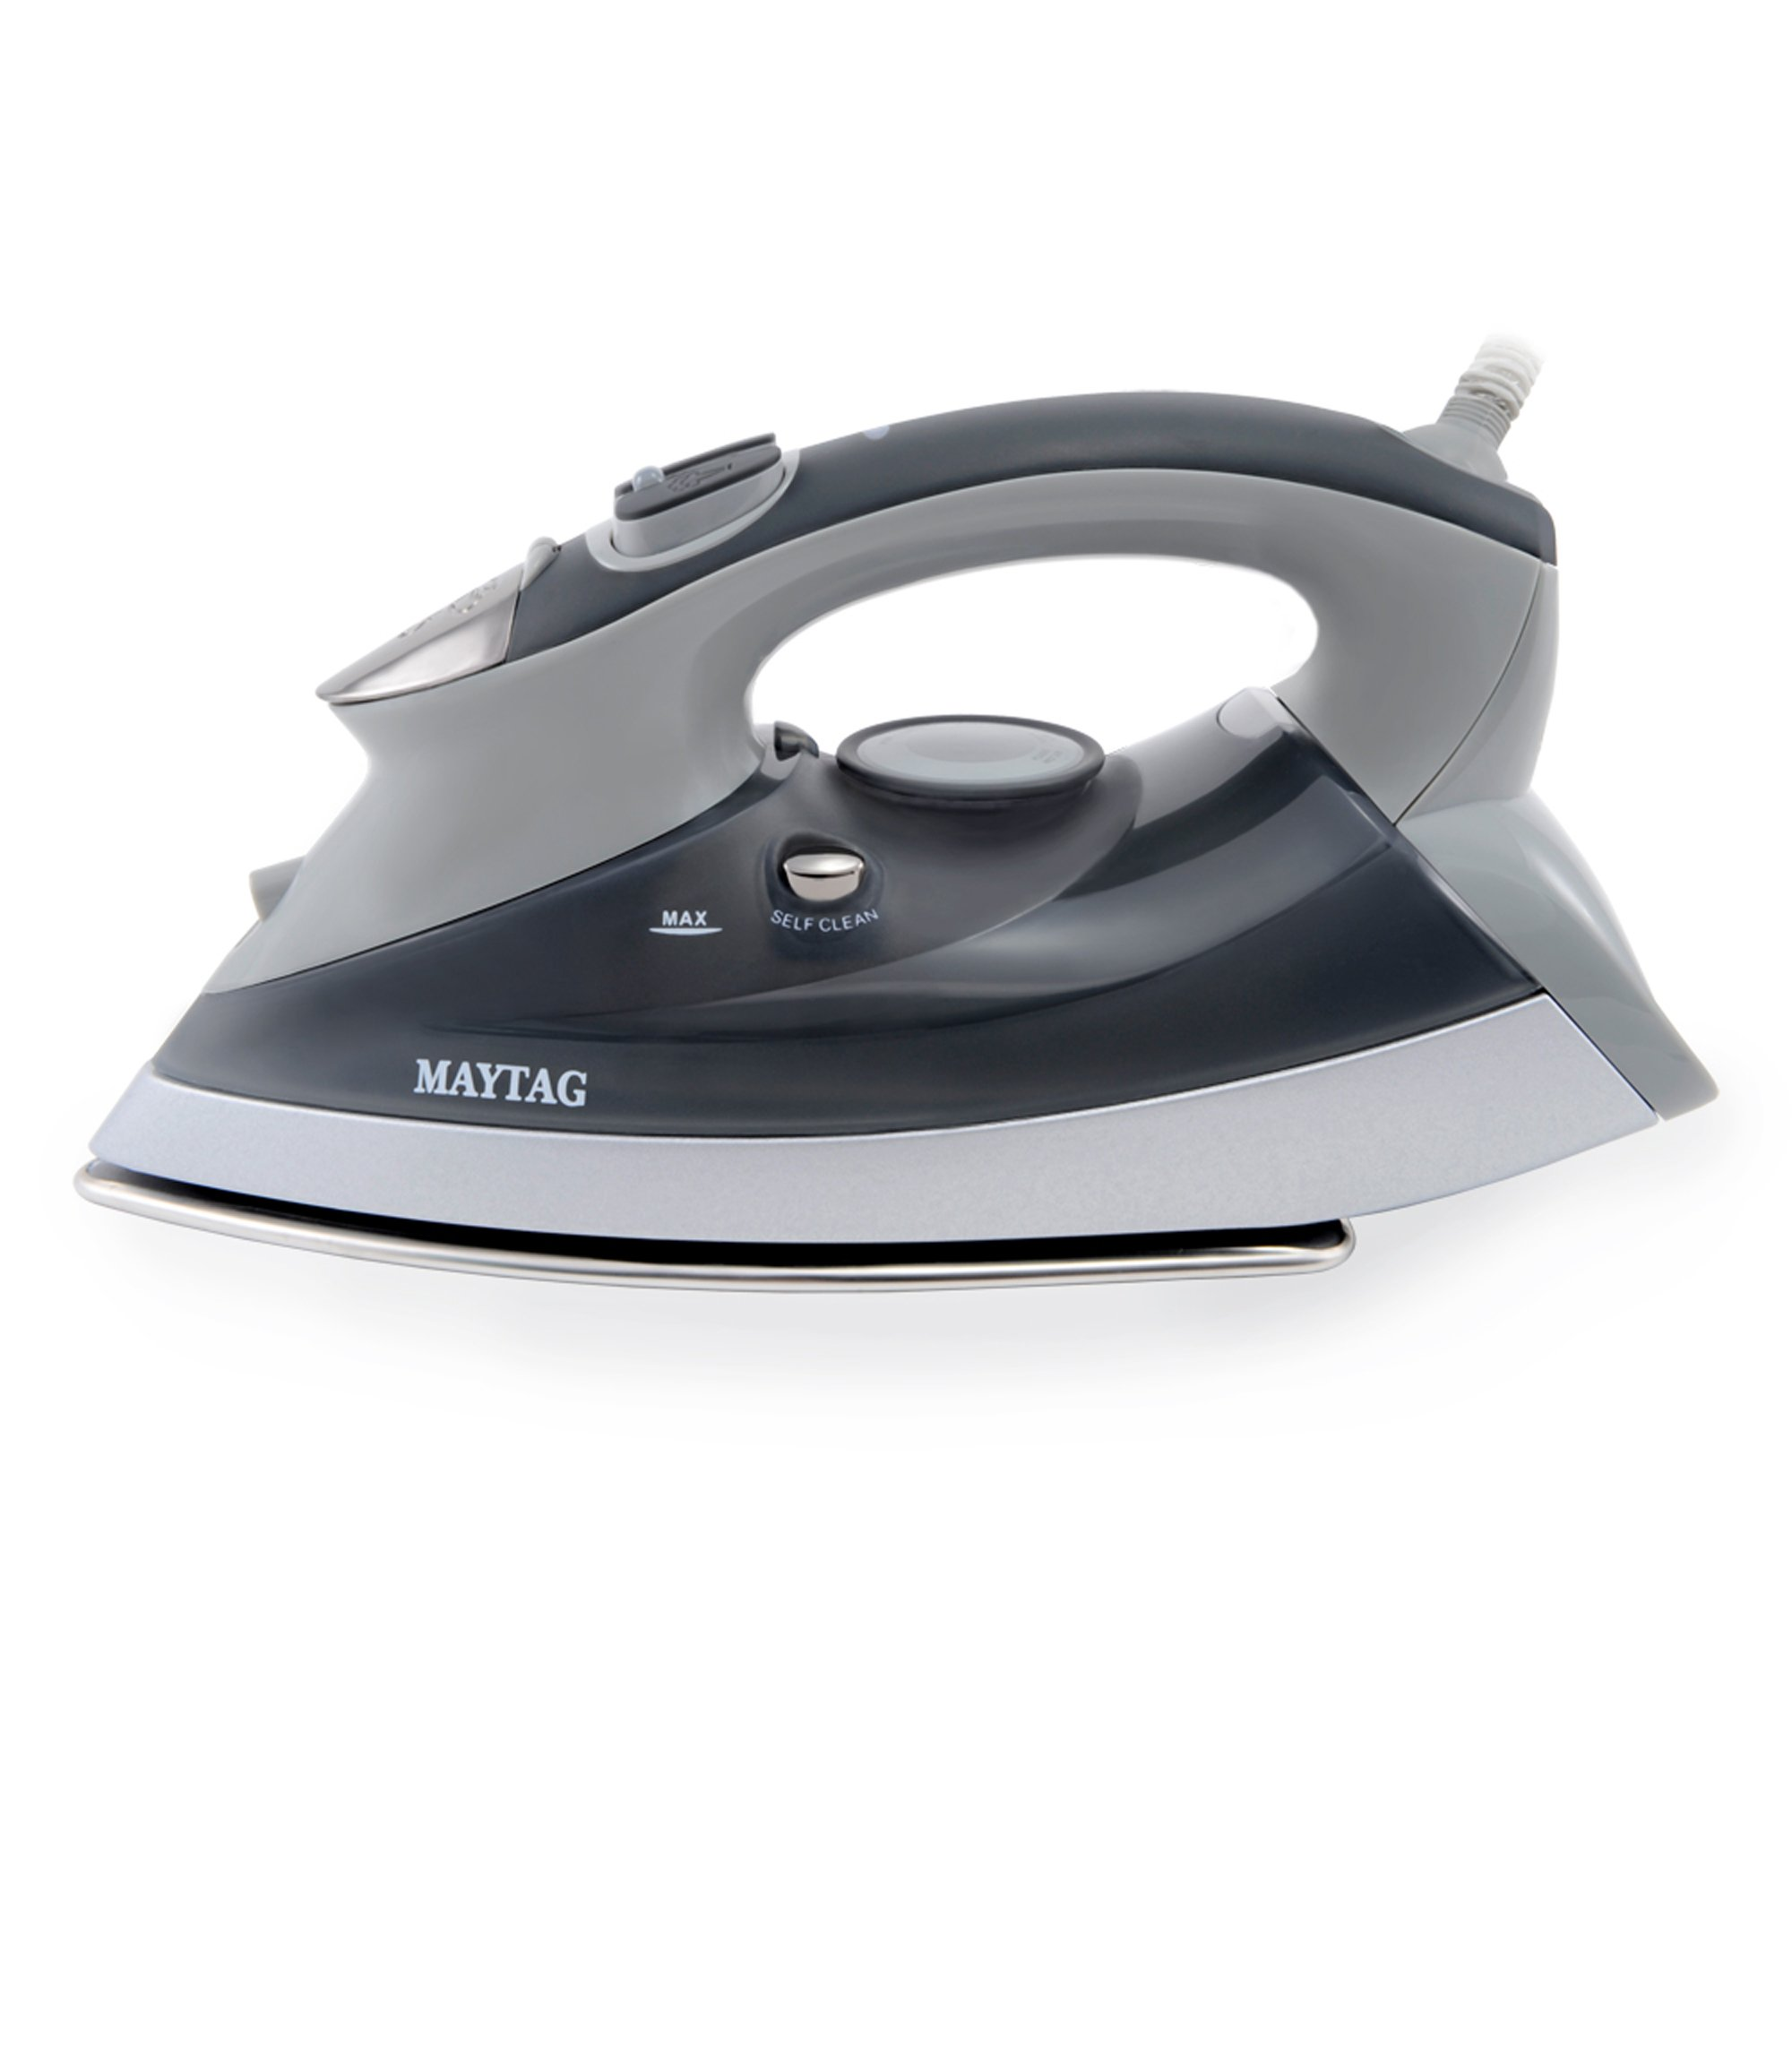 Maytag M400 Speed Heat Steam Iron & Vertical Steamer with Stainless Steel Sole Plate, Self Cleaning Function + Thermostat Dial by Maytag